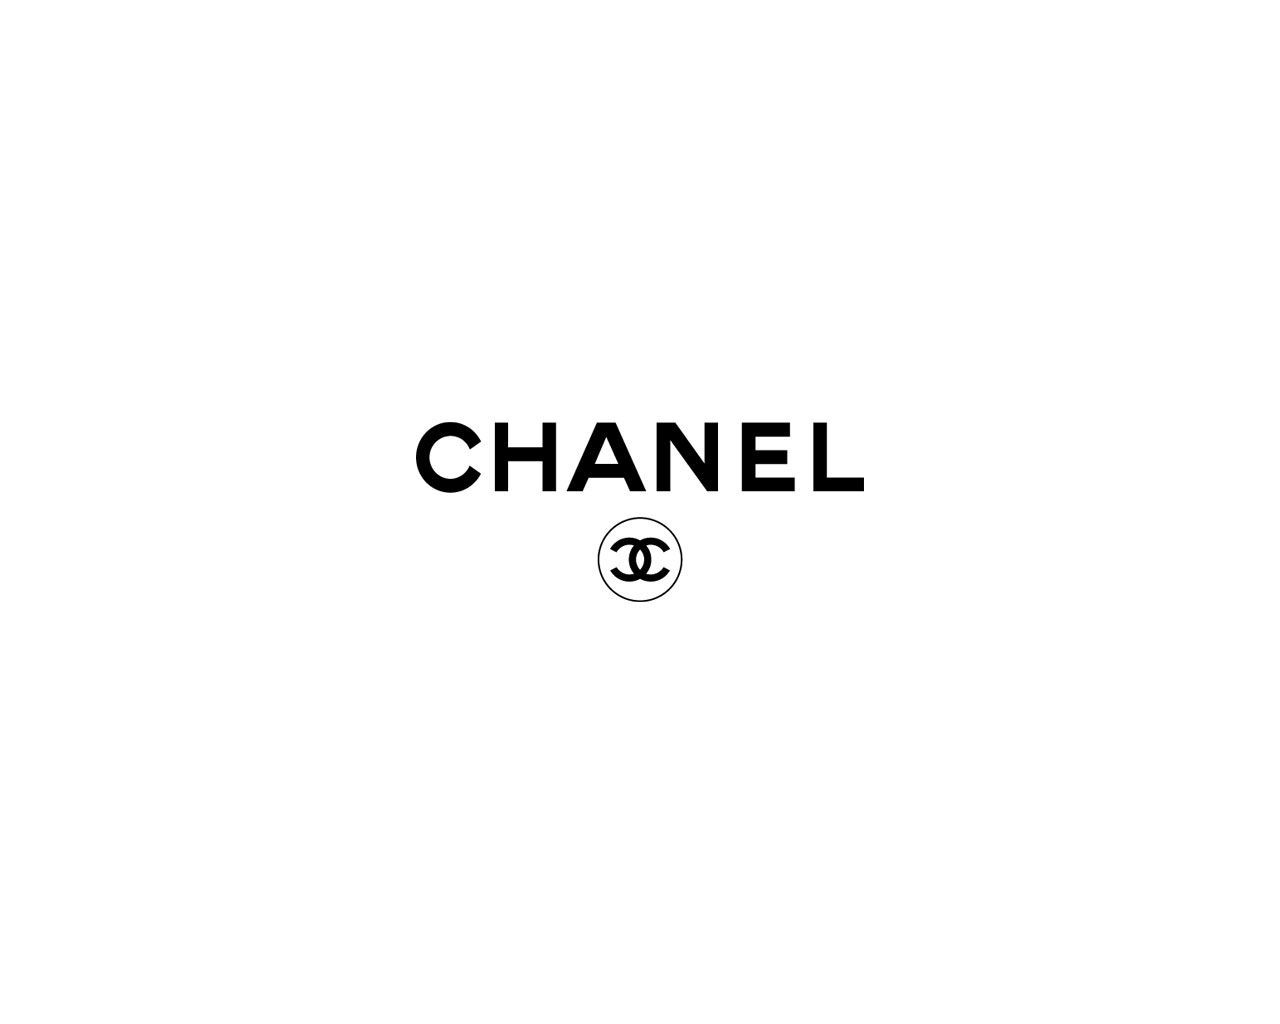 Chanel Logo Wallpapers - Wallpaper Cave